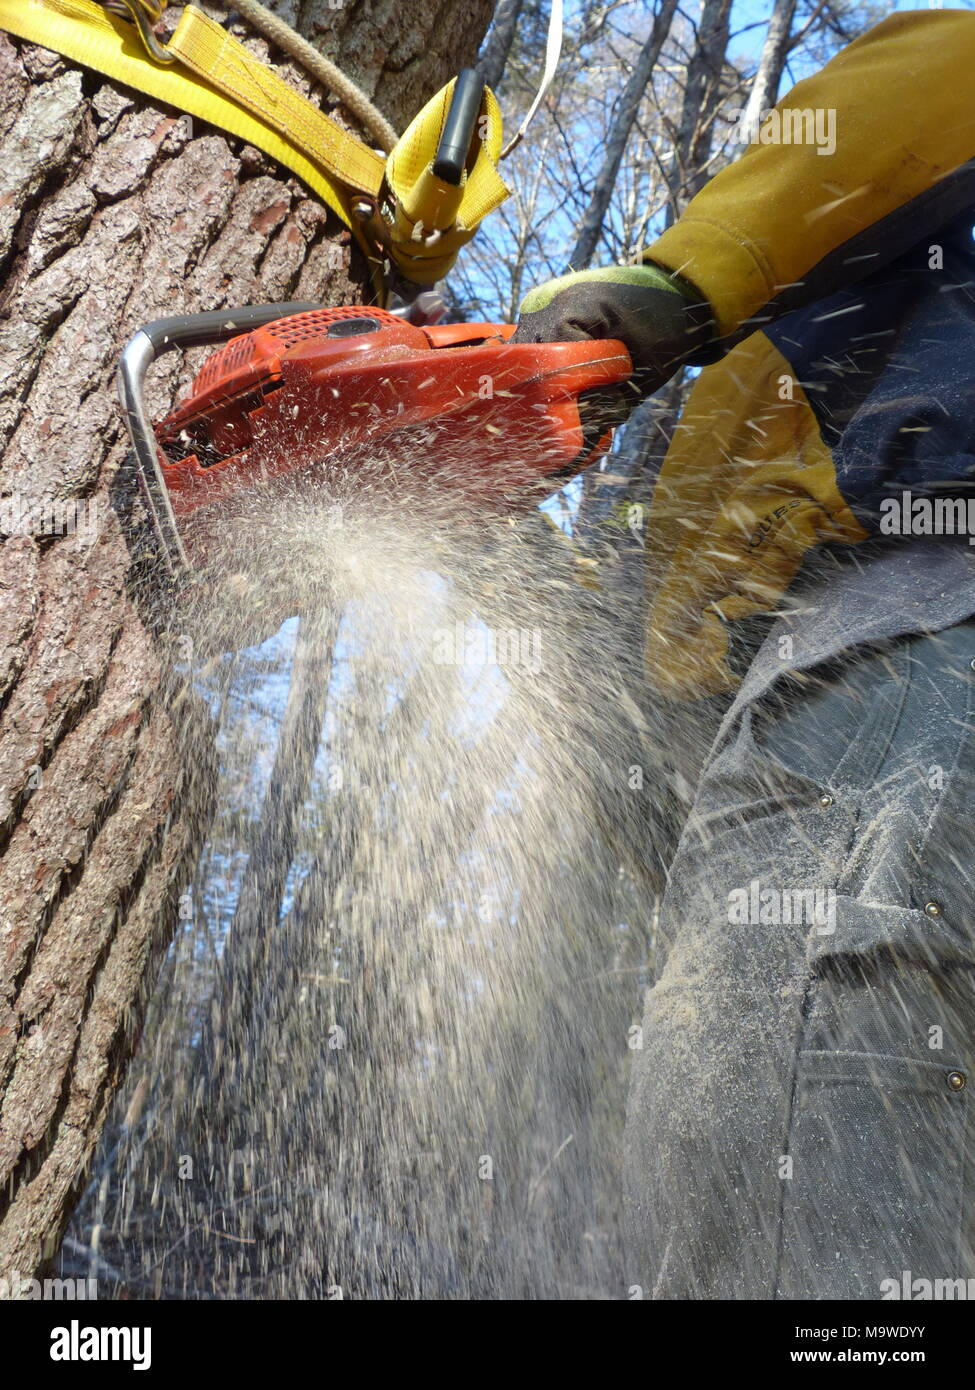 Lumberjack cutting down pine tree in Woodstock, NY - Stock Image